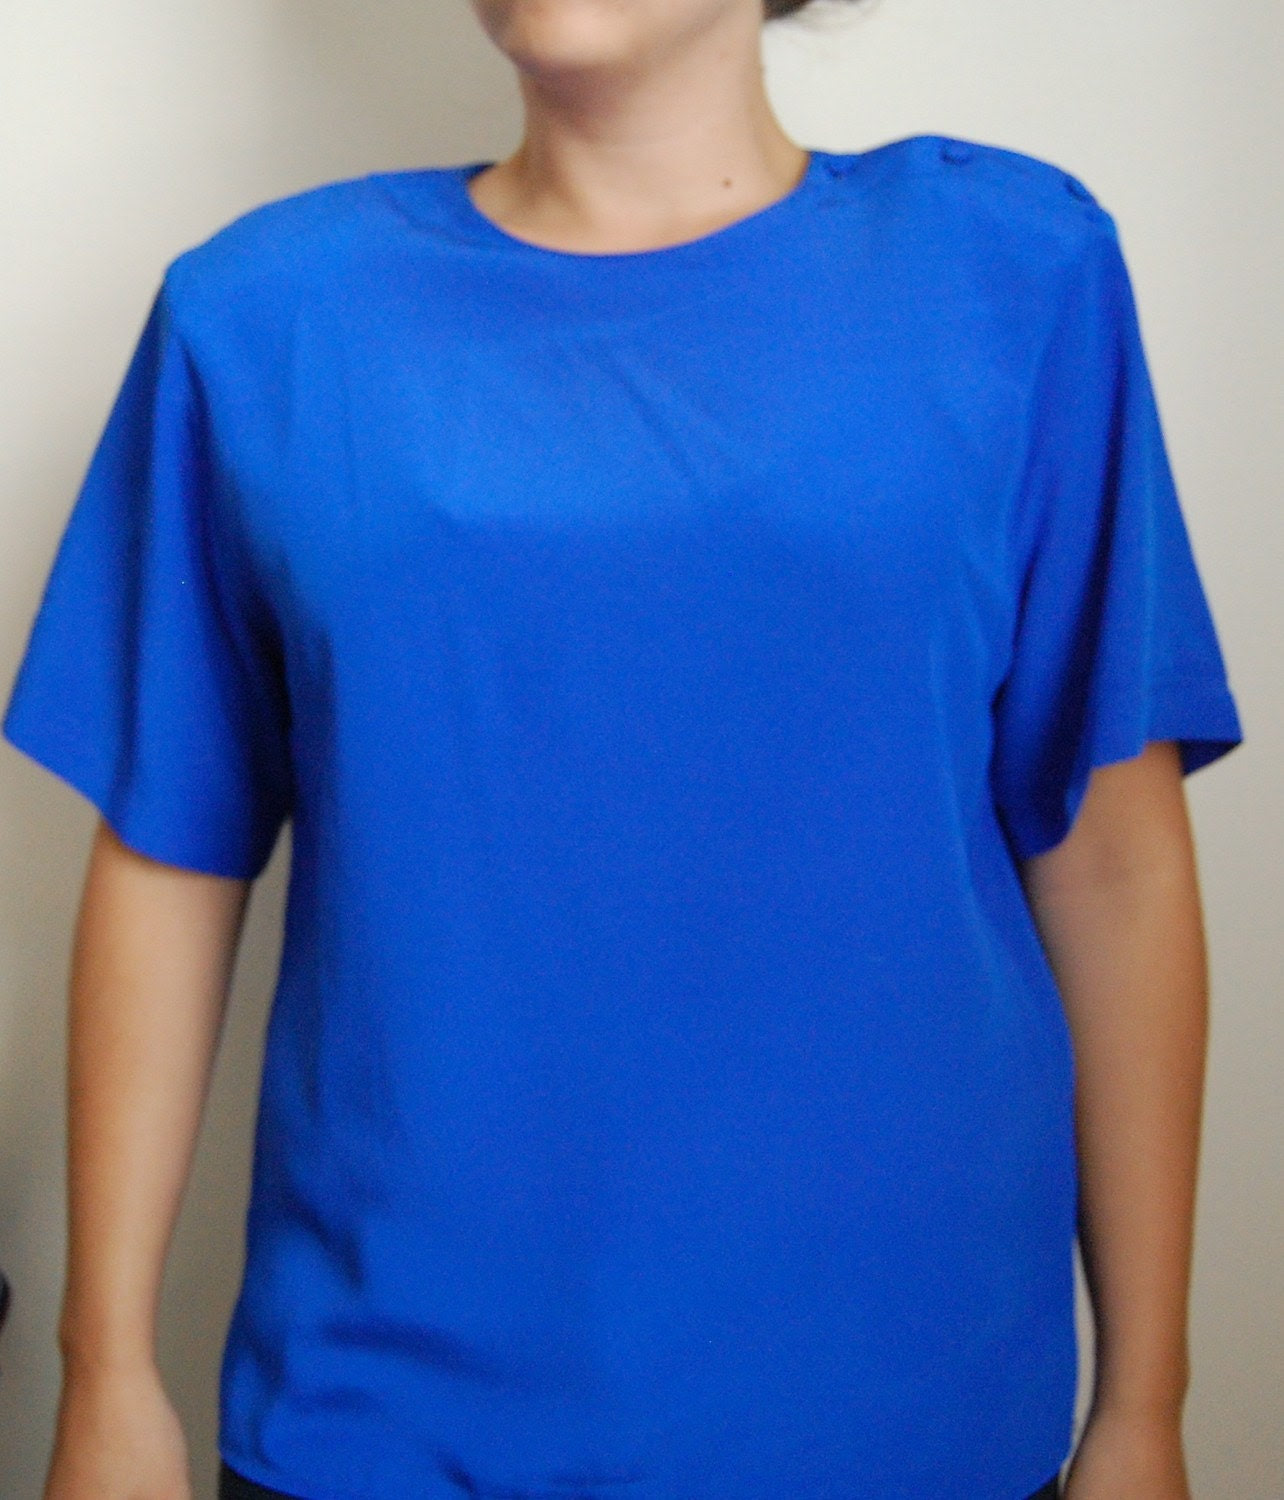 Vintage OPEN WATER Cobalt Blouse - Medium SALE